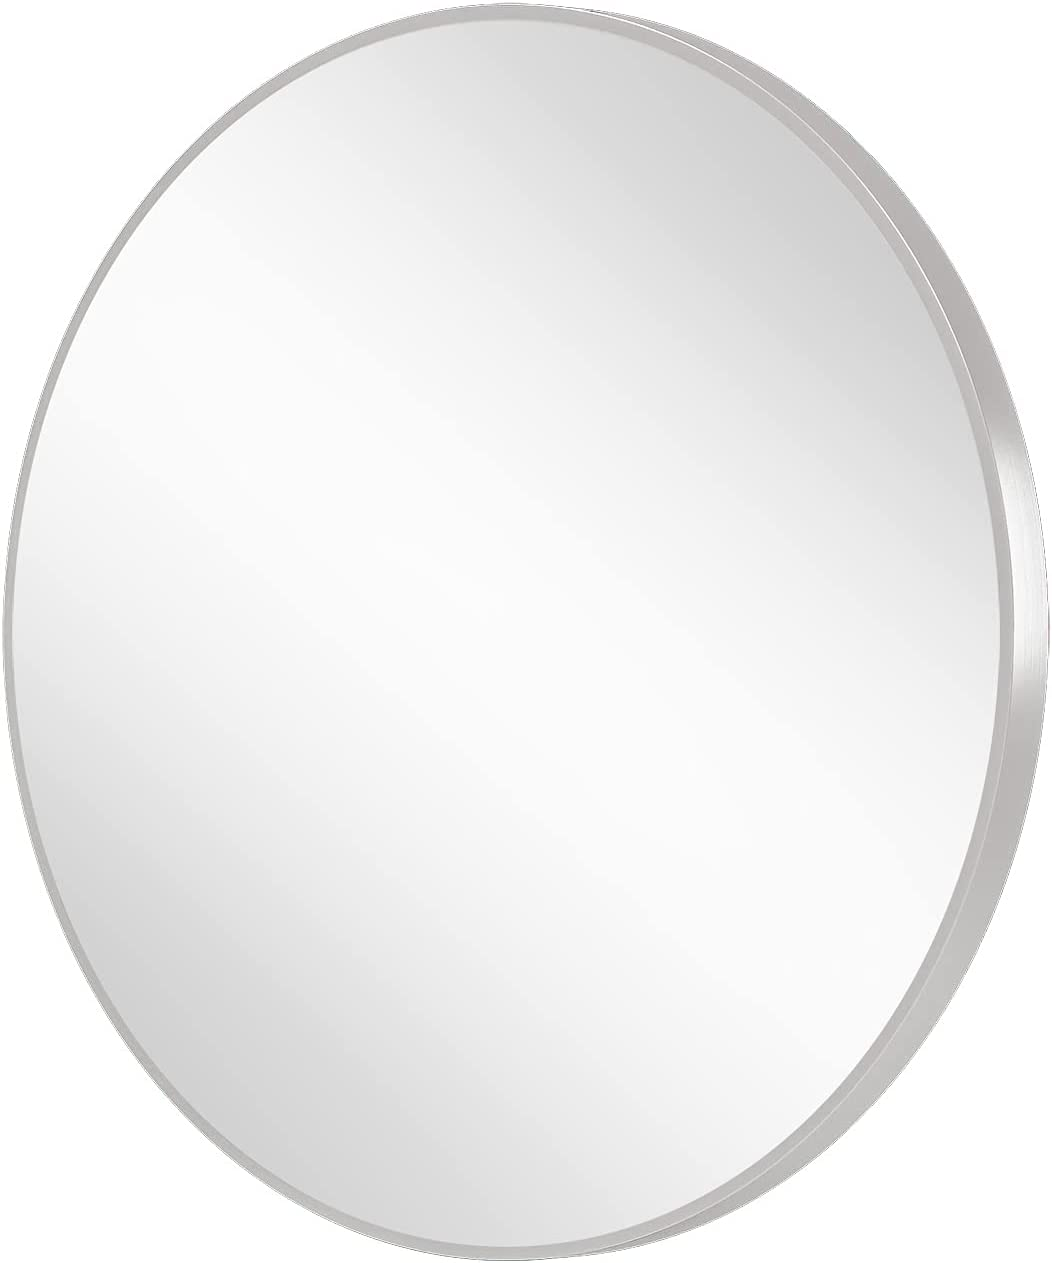 Flyoung 34 Inch Silver Circle Mirror Brushed Stainless Steel Frame Wall Mounted Round Mirrors for Bathroom Vanity Washrooms Metal Framed